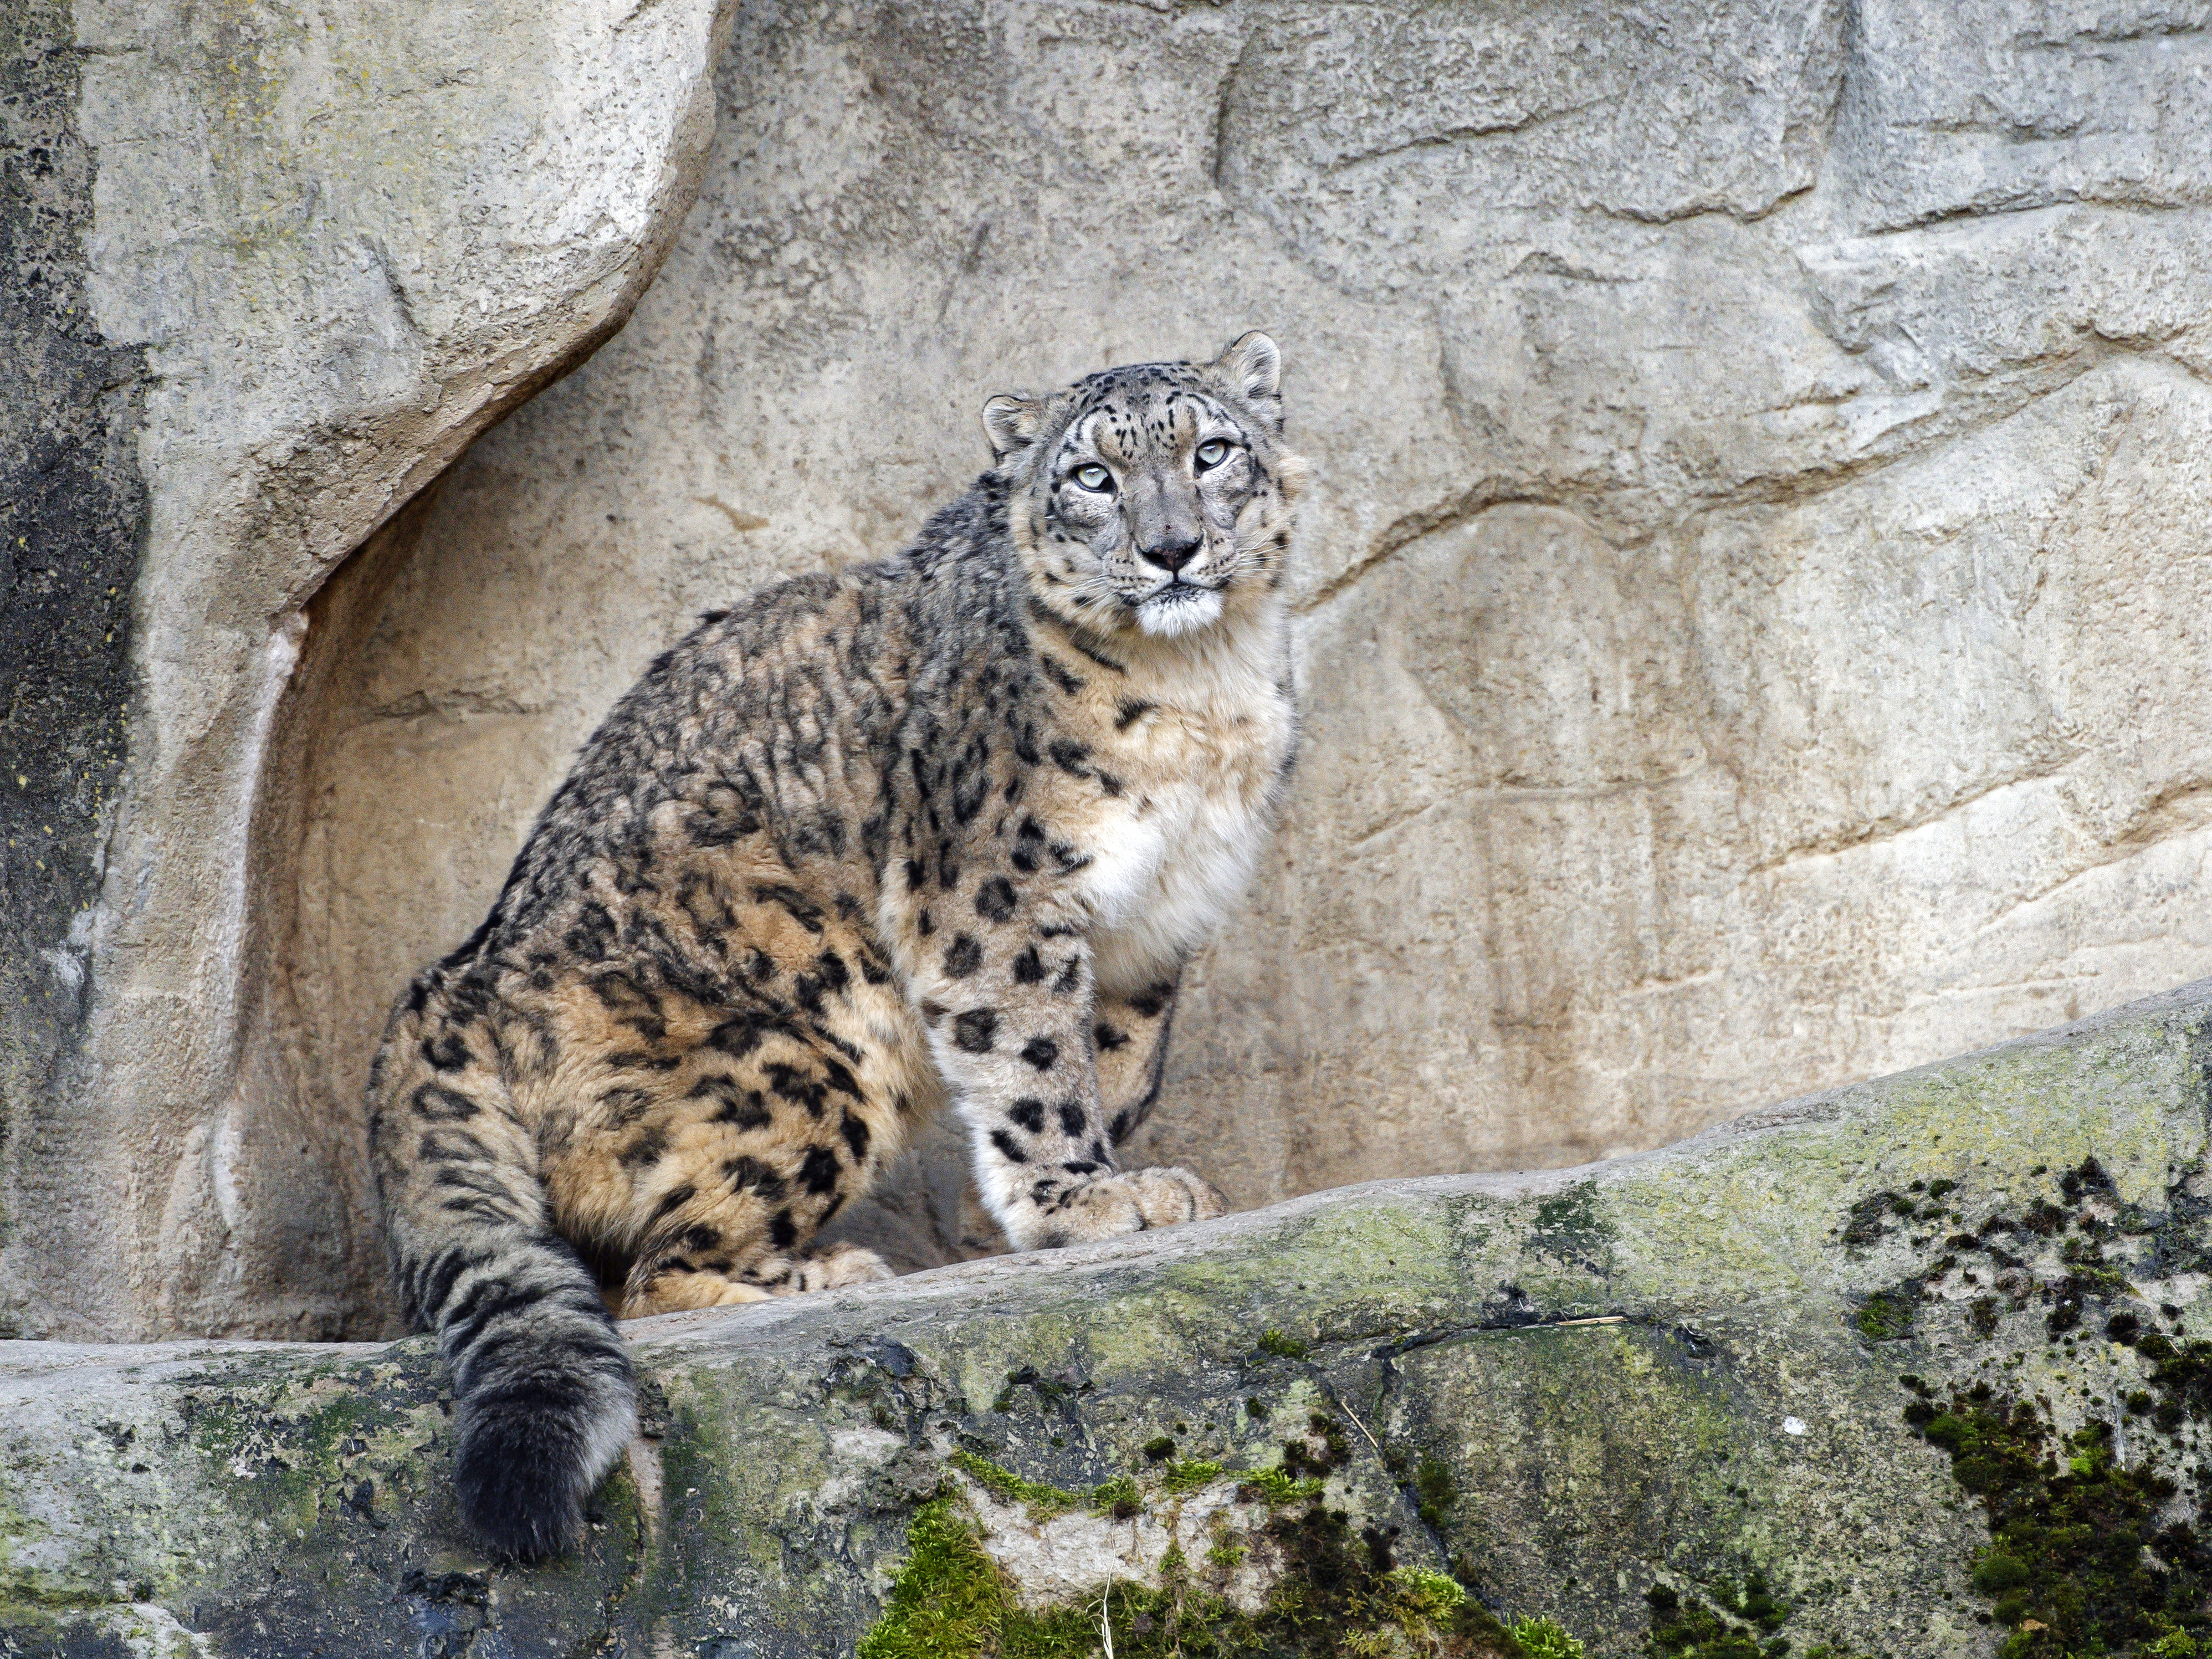 62297 download wallpaper Animals, Predator, Big Cat, Stains, Spots, Rocks, Snow Leopard screensavers and pictures for free